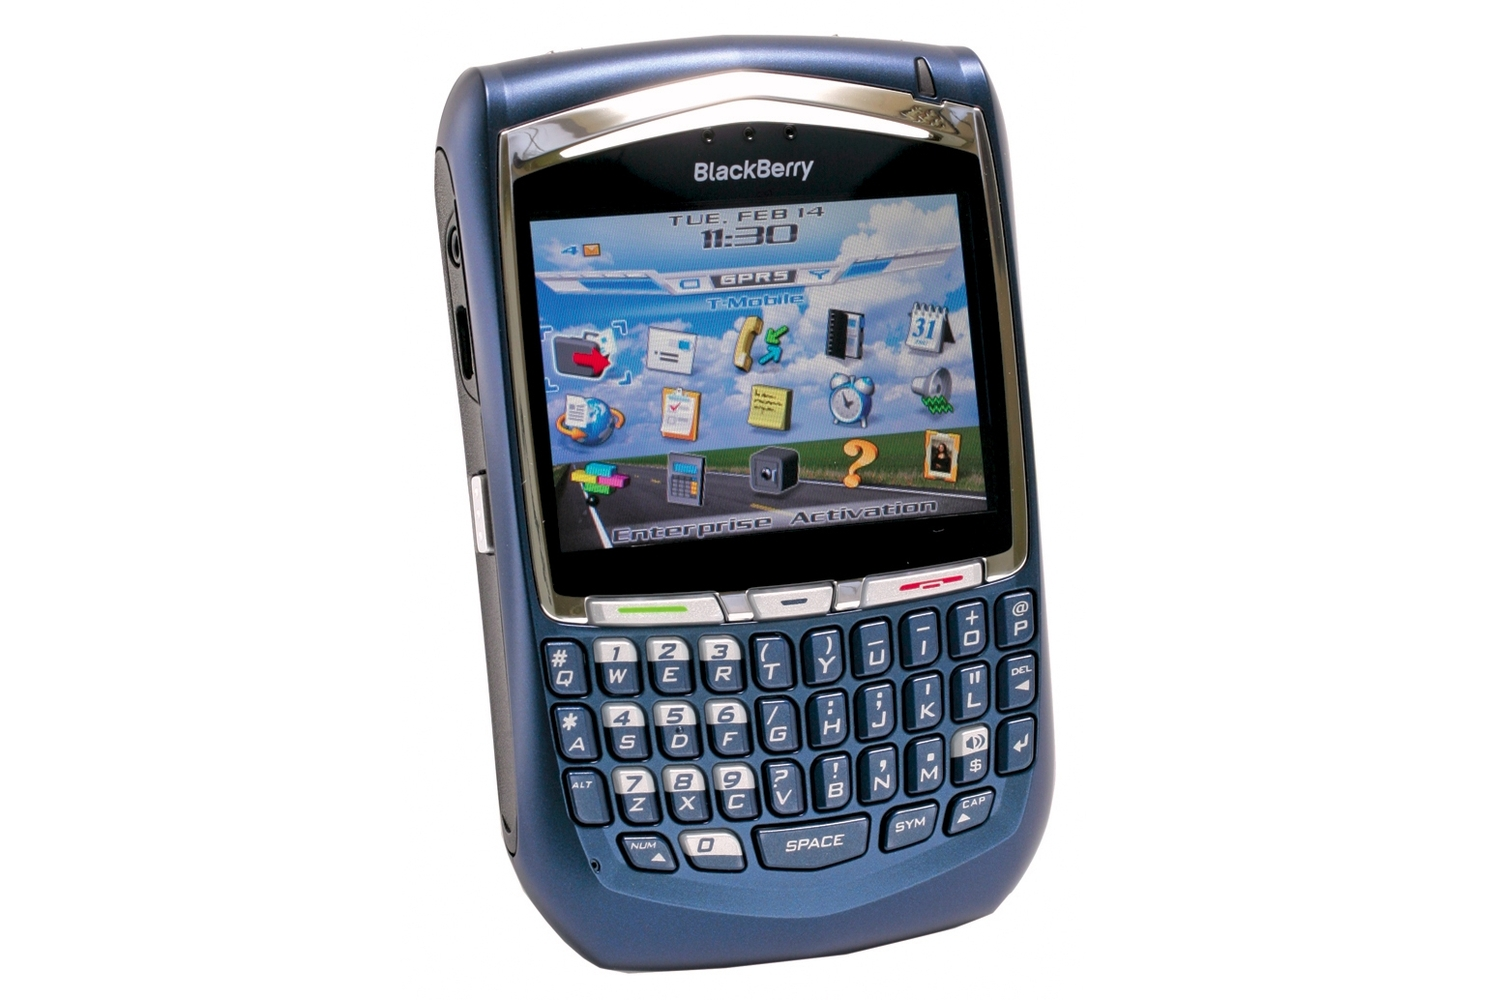 Research In Motion BlackBerry 8700G Review: - Mobile Phones - Smart Phones  - PC World Australia